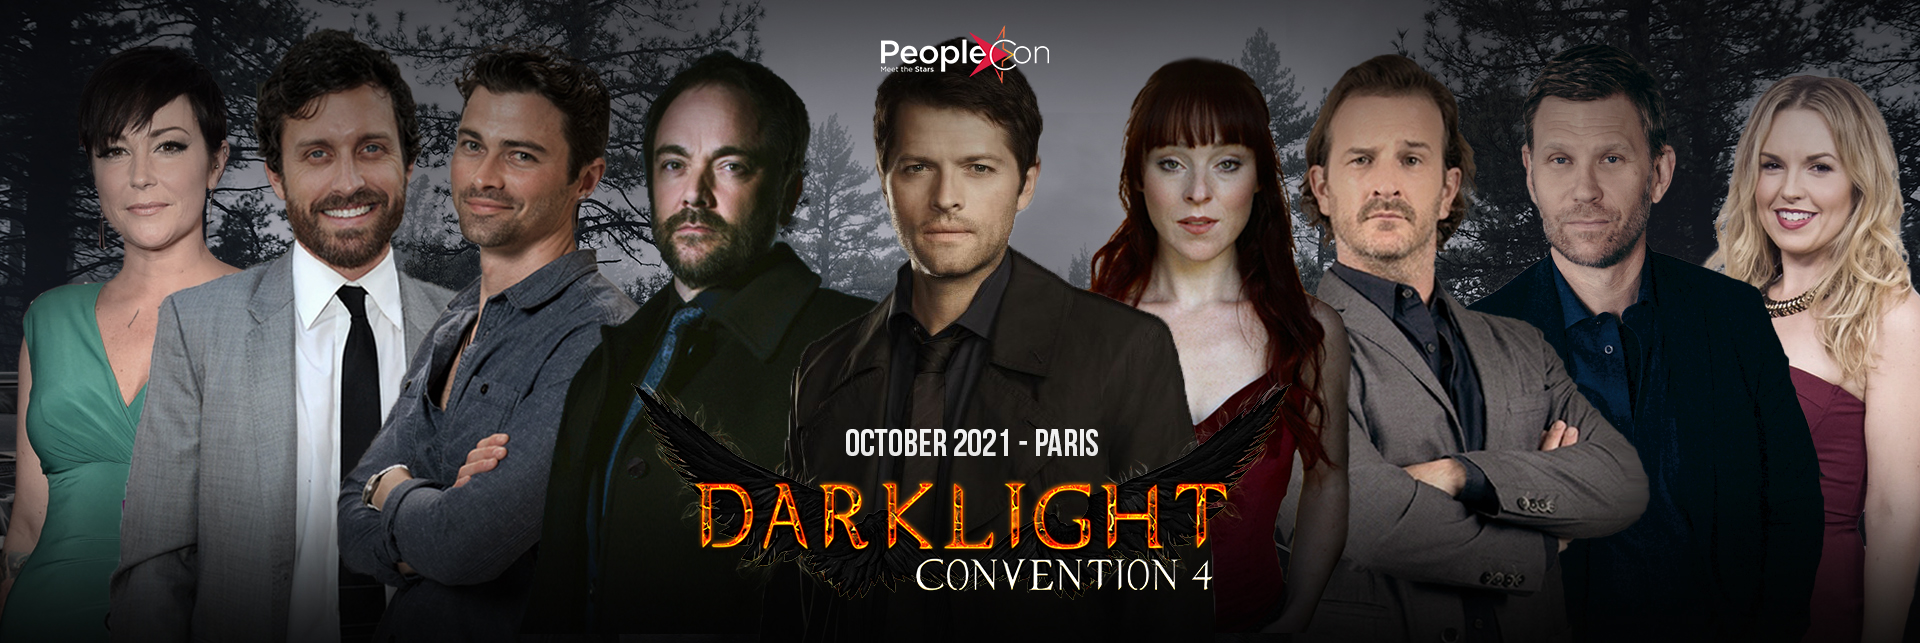 DarkLight Convention 4